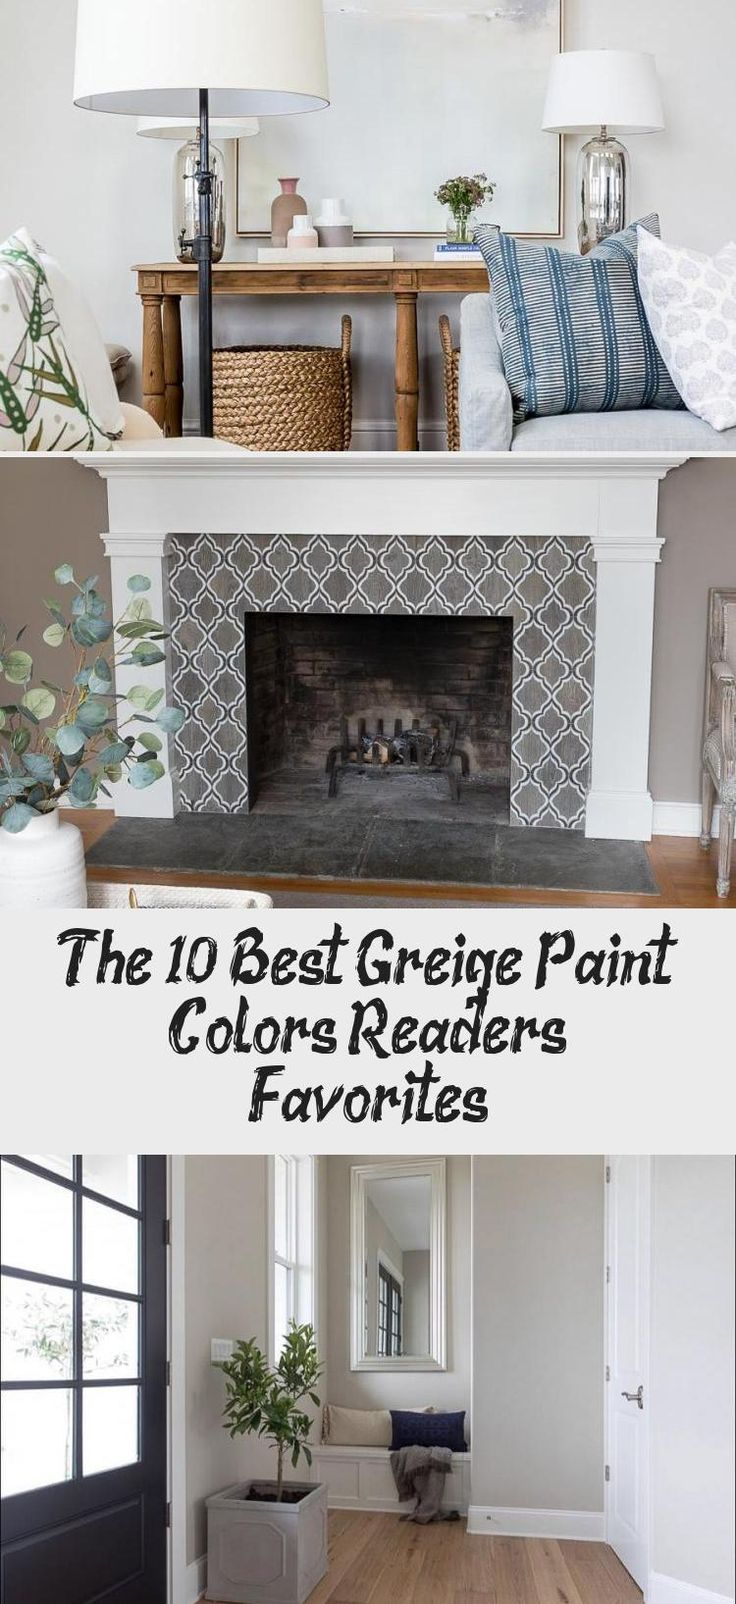 the 10 best greige paint colors readers favorites on 10 most popular paint colors id=23174